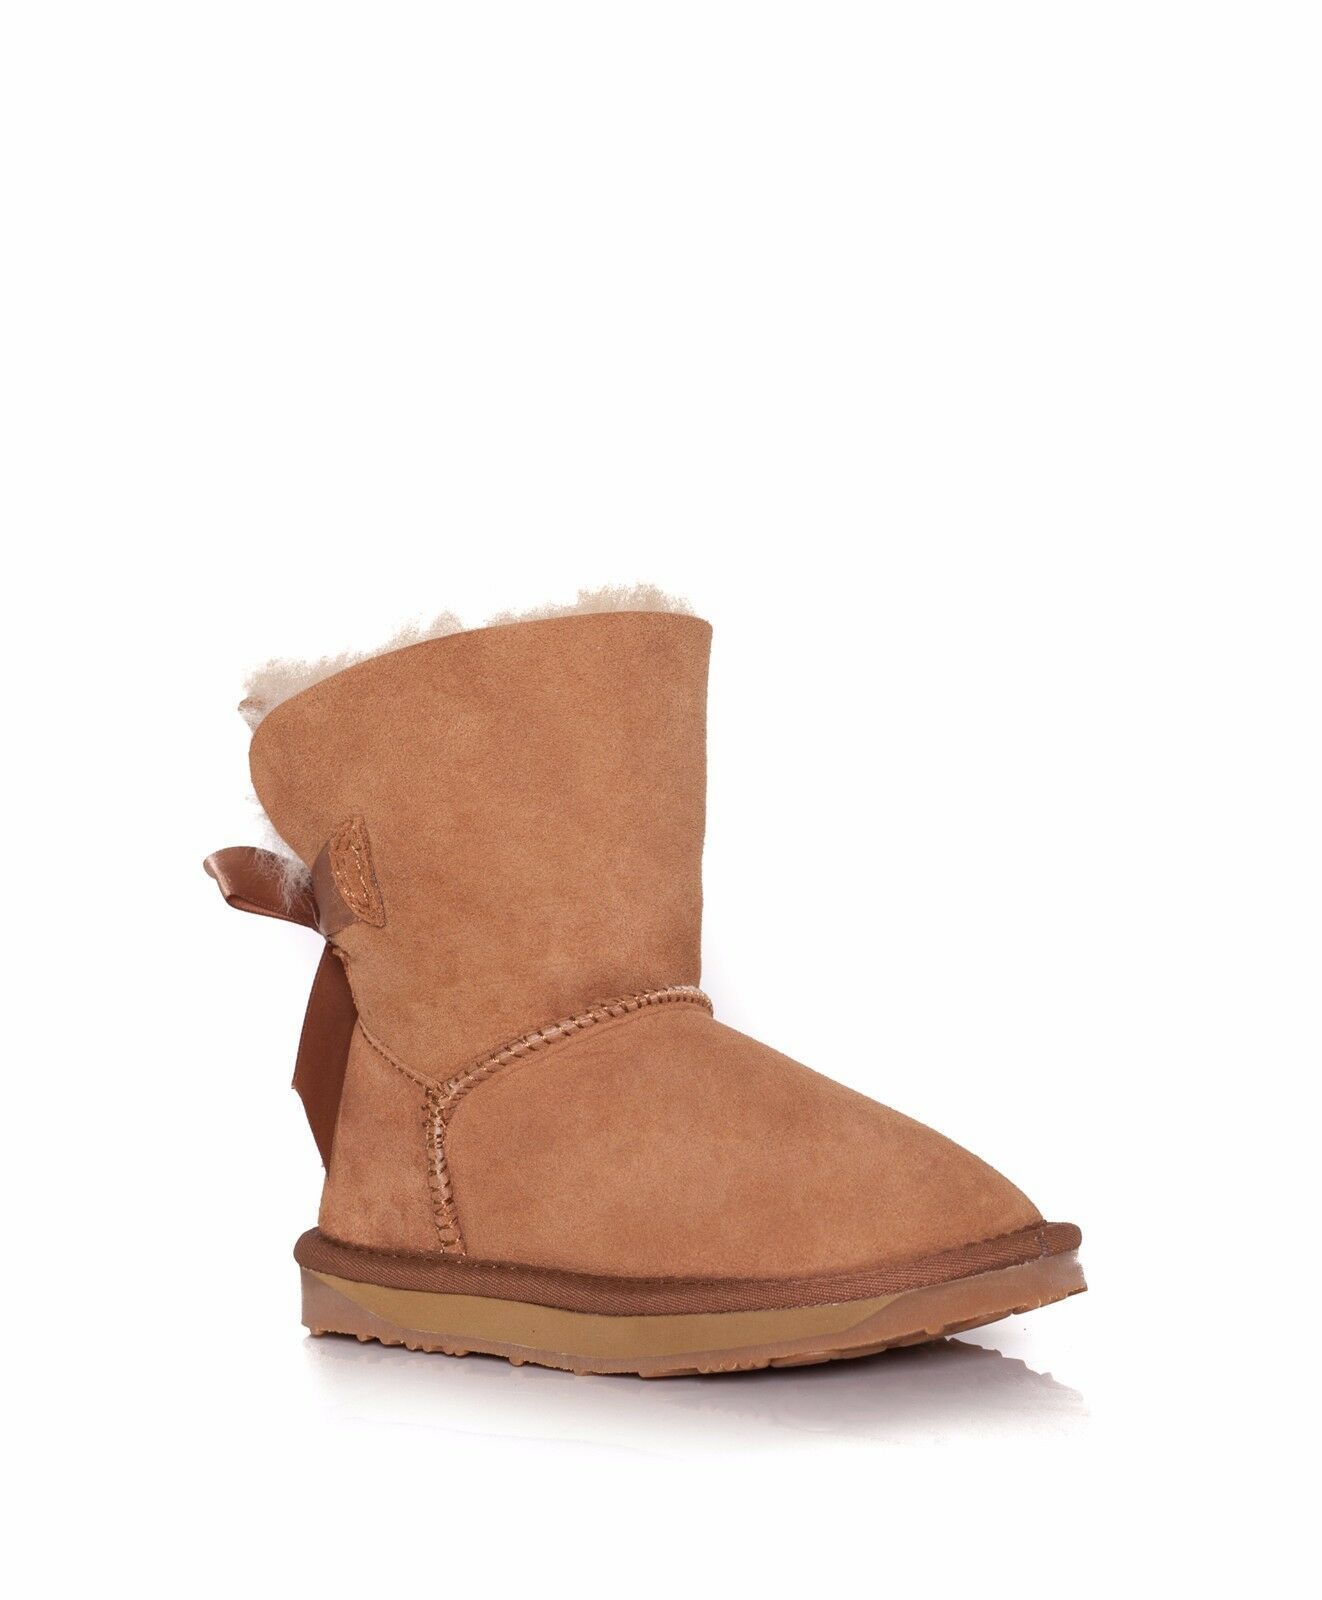 7a4d24971e6 Kids Boy Girl 100 Australian Sheepskin Ever UGG BOOTS Back Bailey Bow 10/11  Chestnut